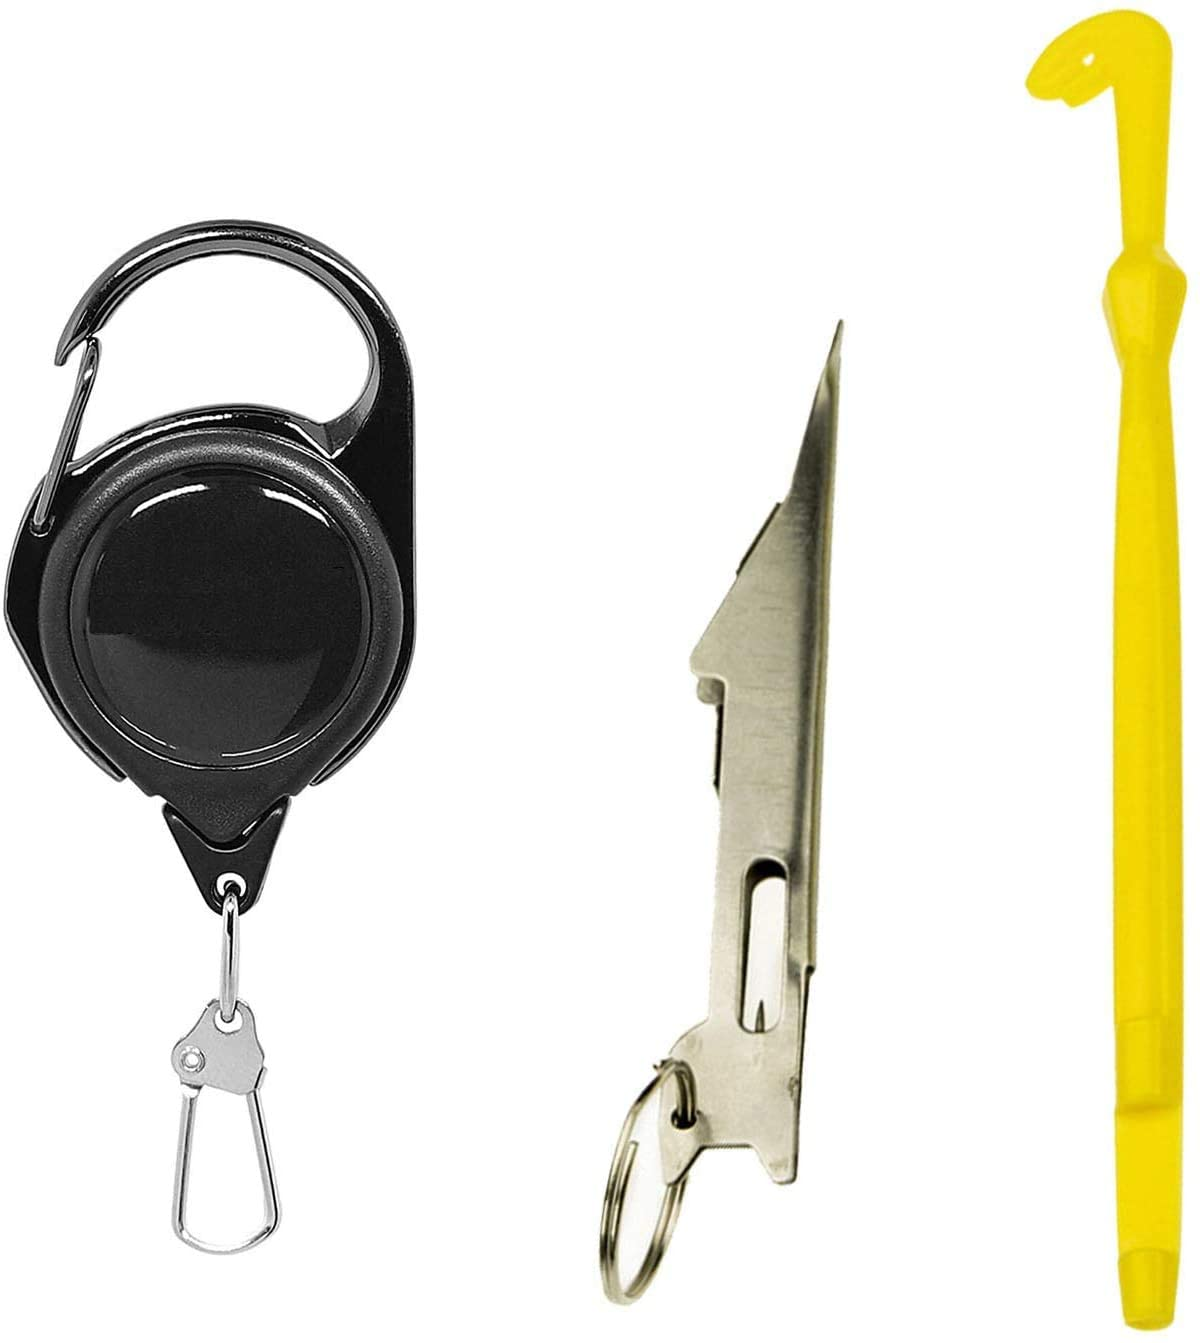 Luengo Fly Fishing Angler Accessories Magnum Knot Tying Tool and Quick Loop Tyer Retractor Combo Green